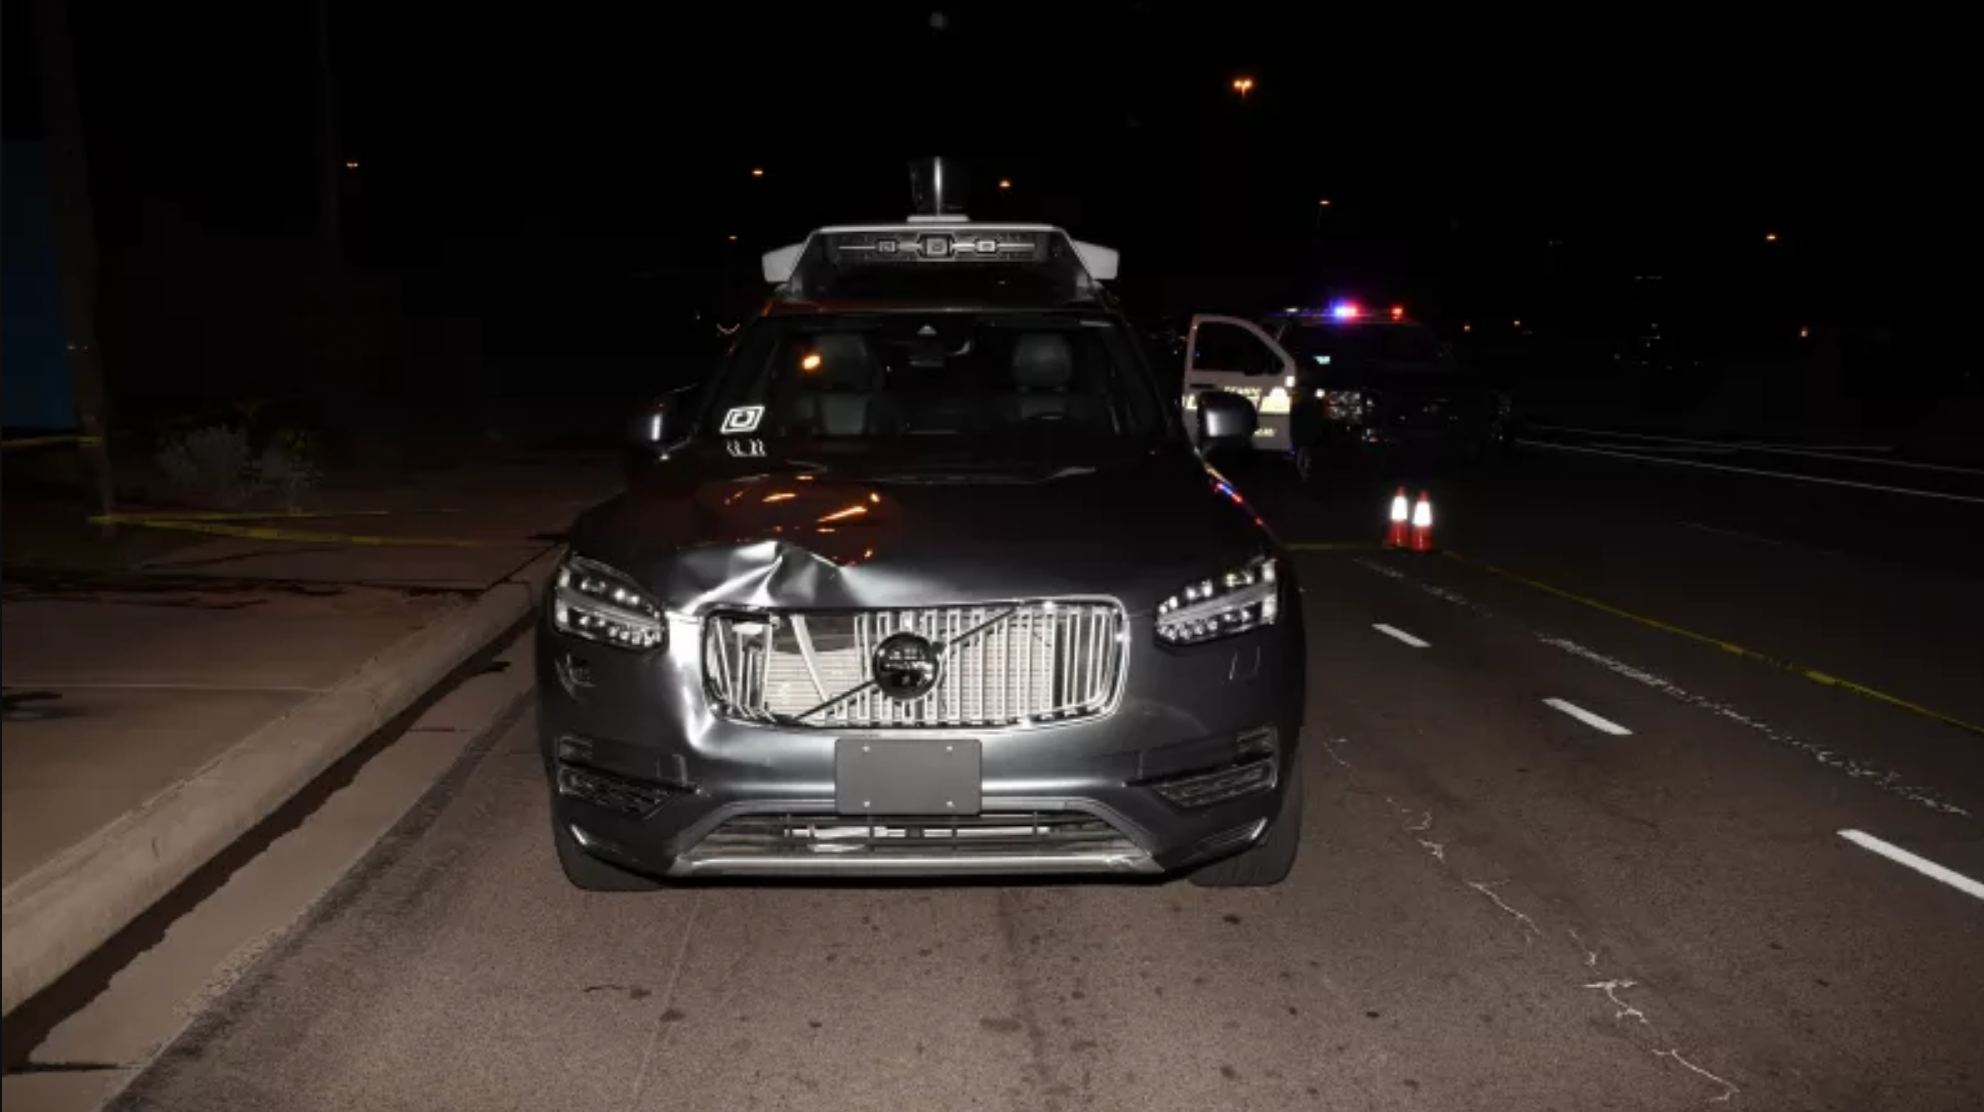 "A self-driving prototype owned by Uber <a href=""https://arstechnica.com/cars/2019/11/how-terrible-software-design-decisions-led-to-ubers-deadly-2018-crash/"">struck and killed Elaine Herzberg</a> in Tempe, Arizona, in 2018.'><img alt="